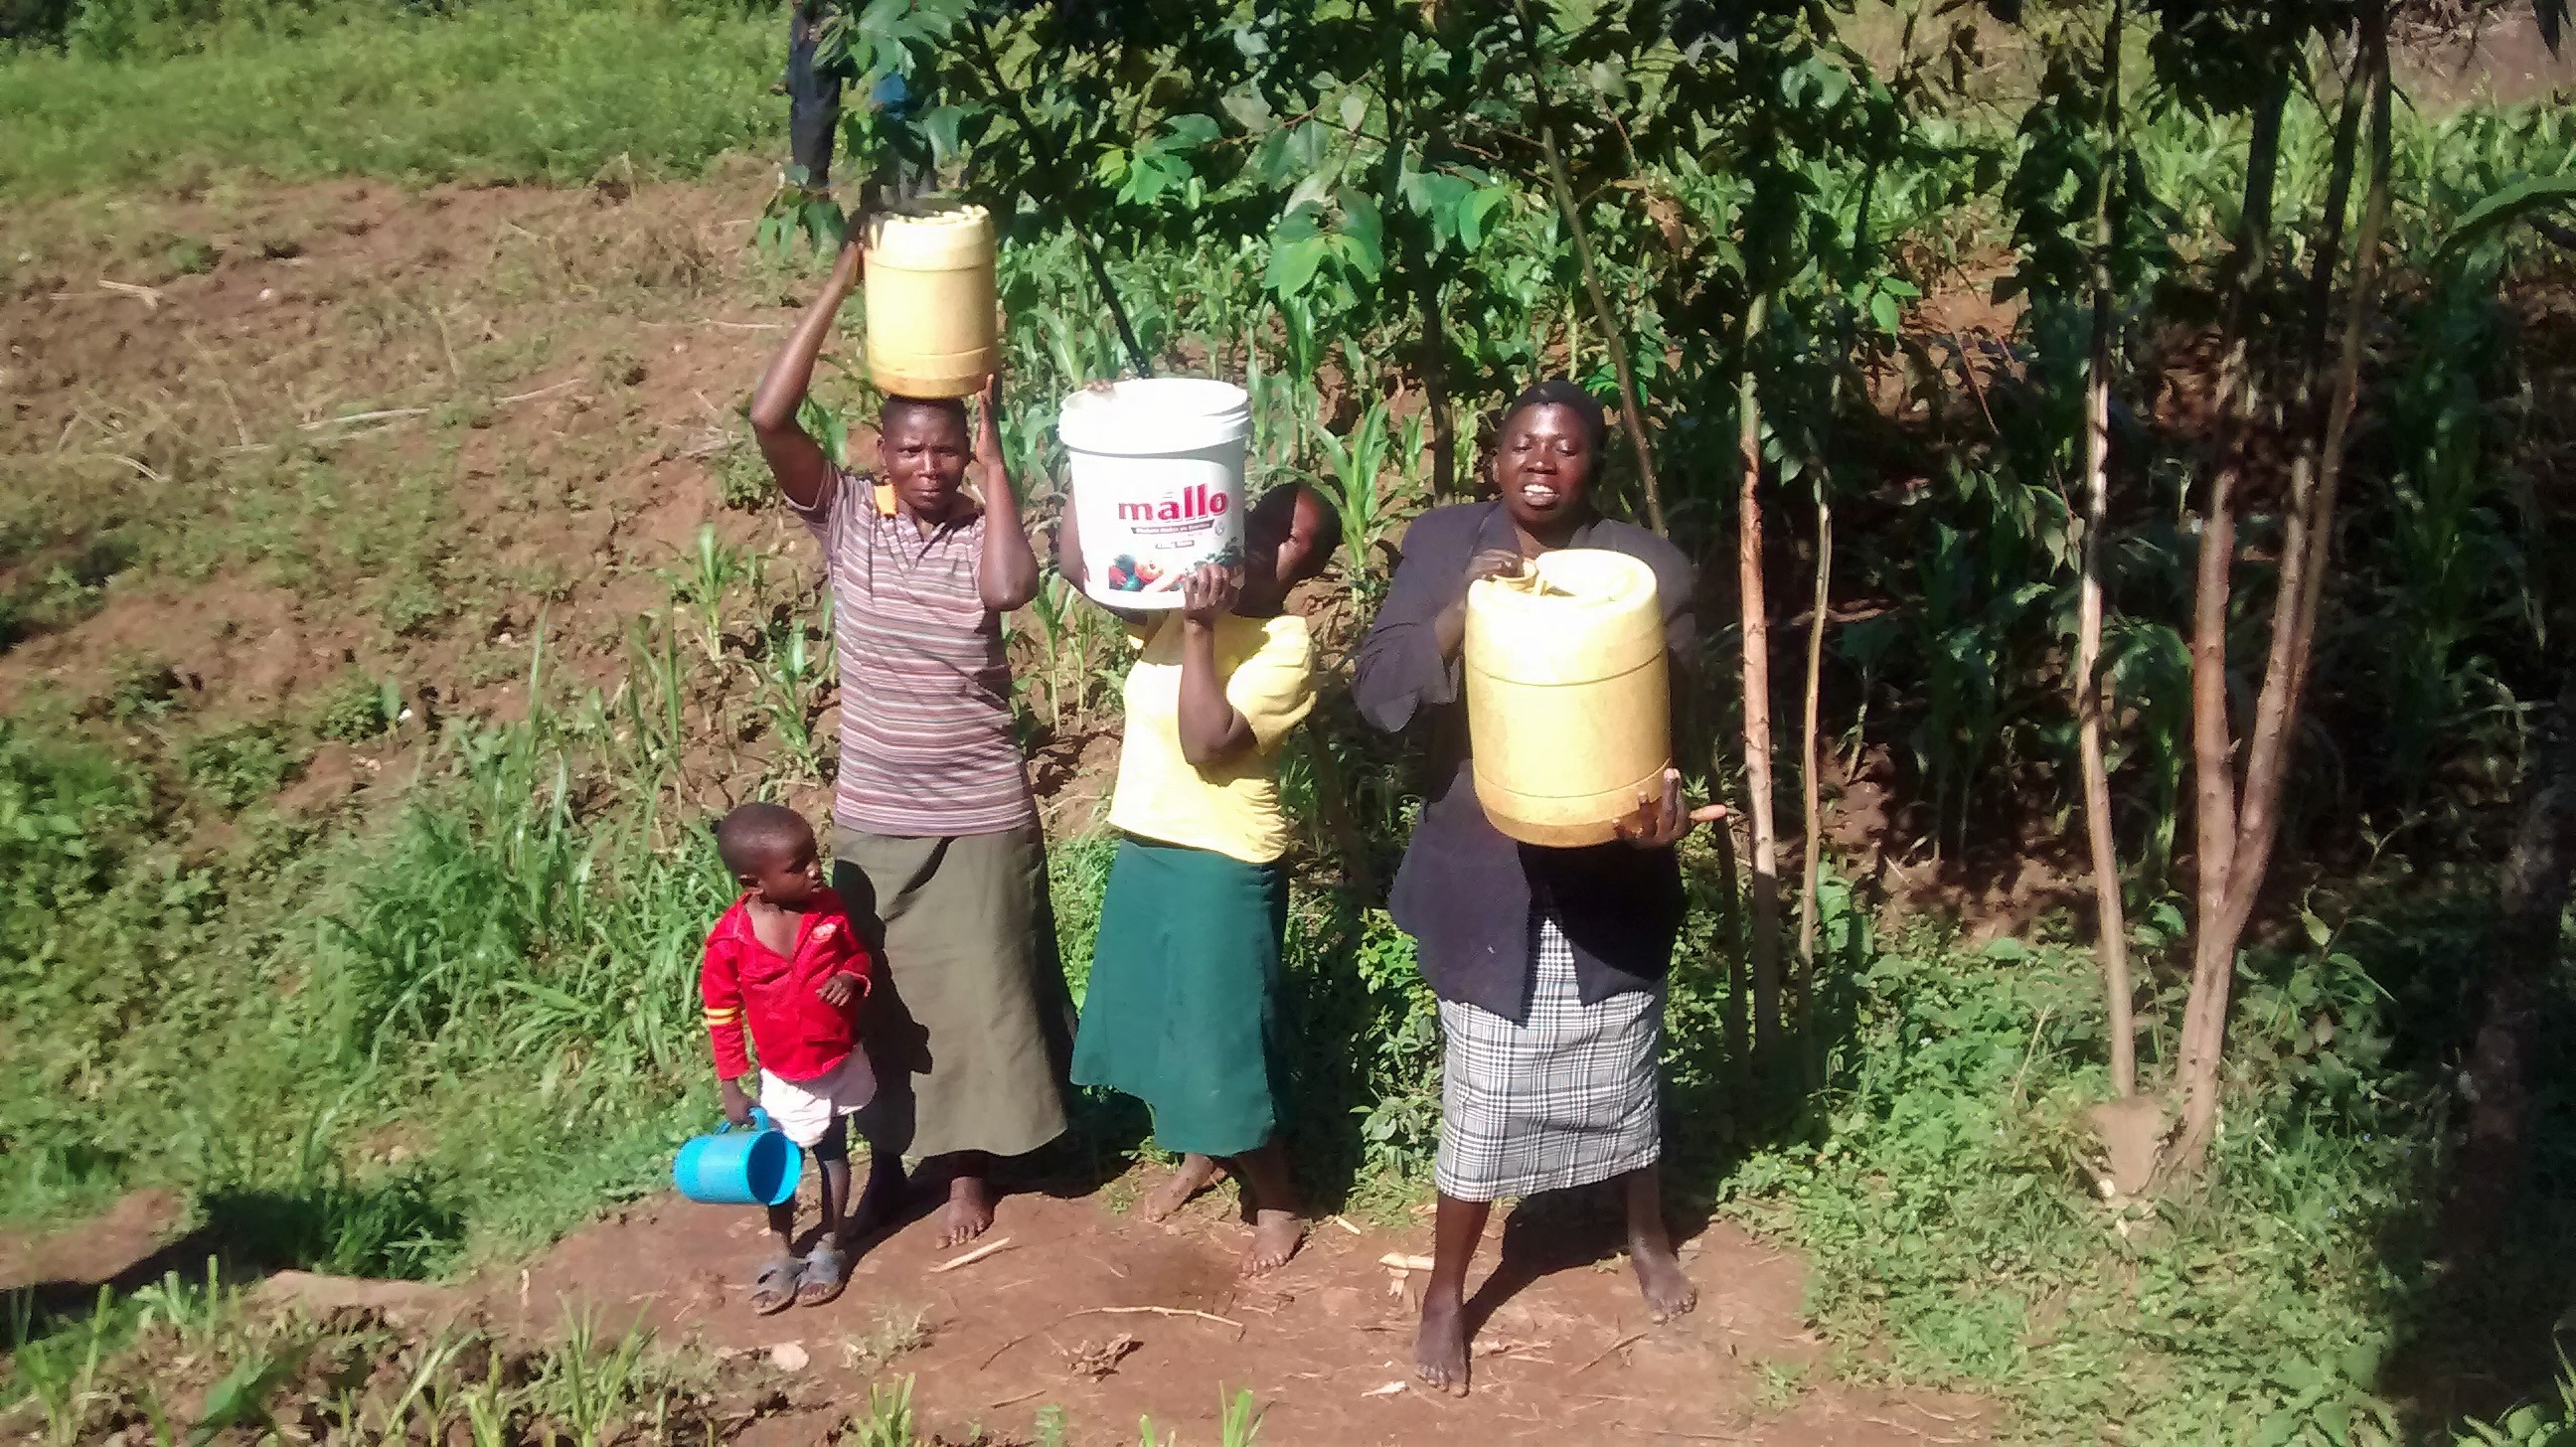 The Water Project : kenya18133-lifting-jerrycans-filled-with-water-onto-heads